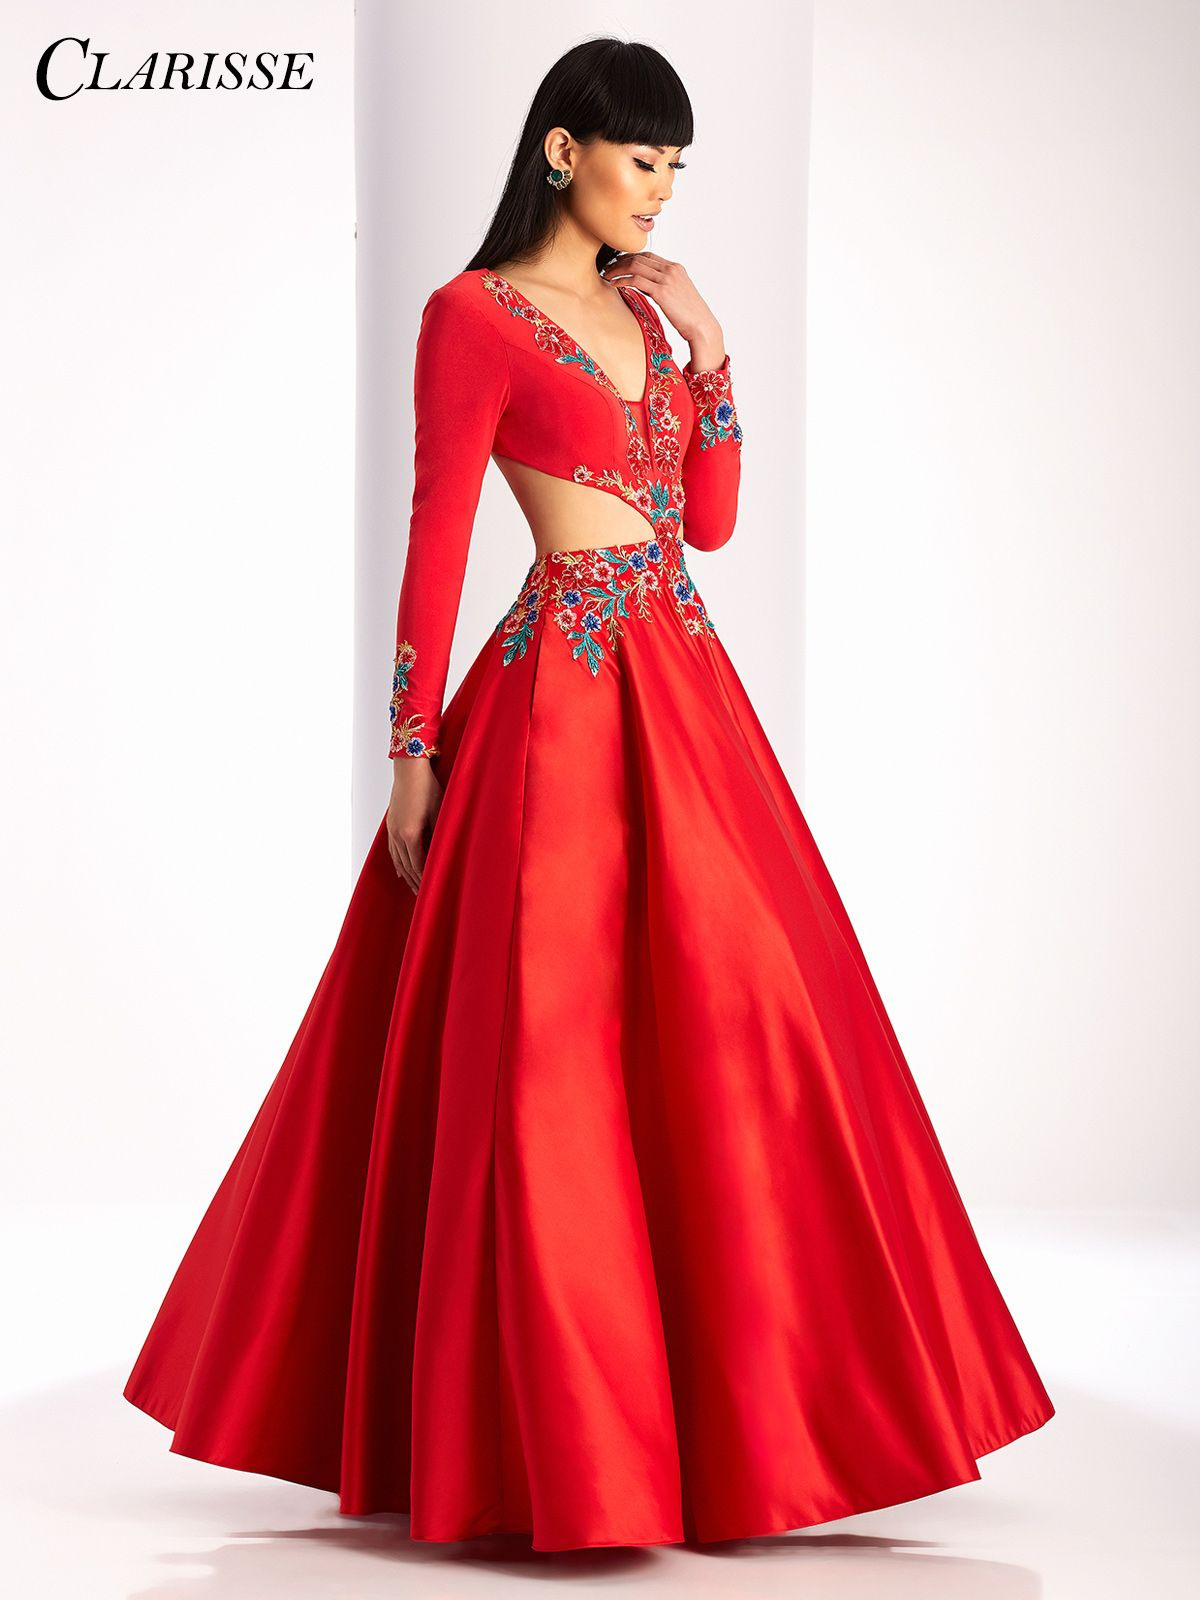 Clarisse Long Sleeve Prom Dress 3025 | Embroidered flowers, Ball ...